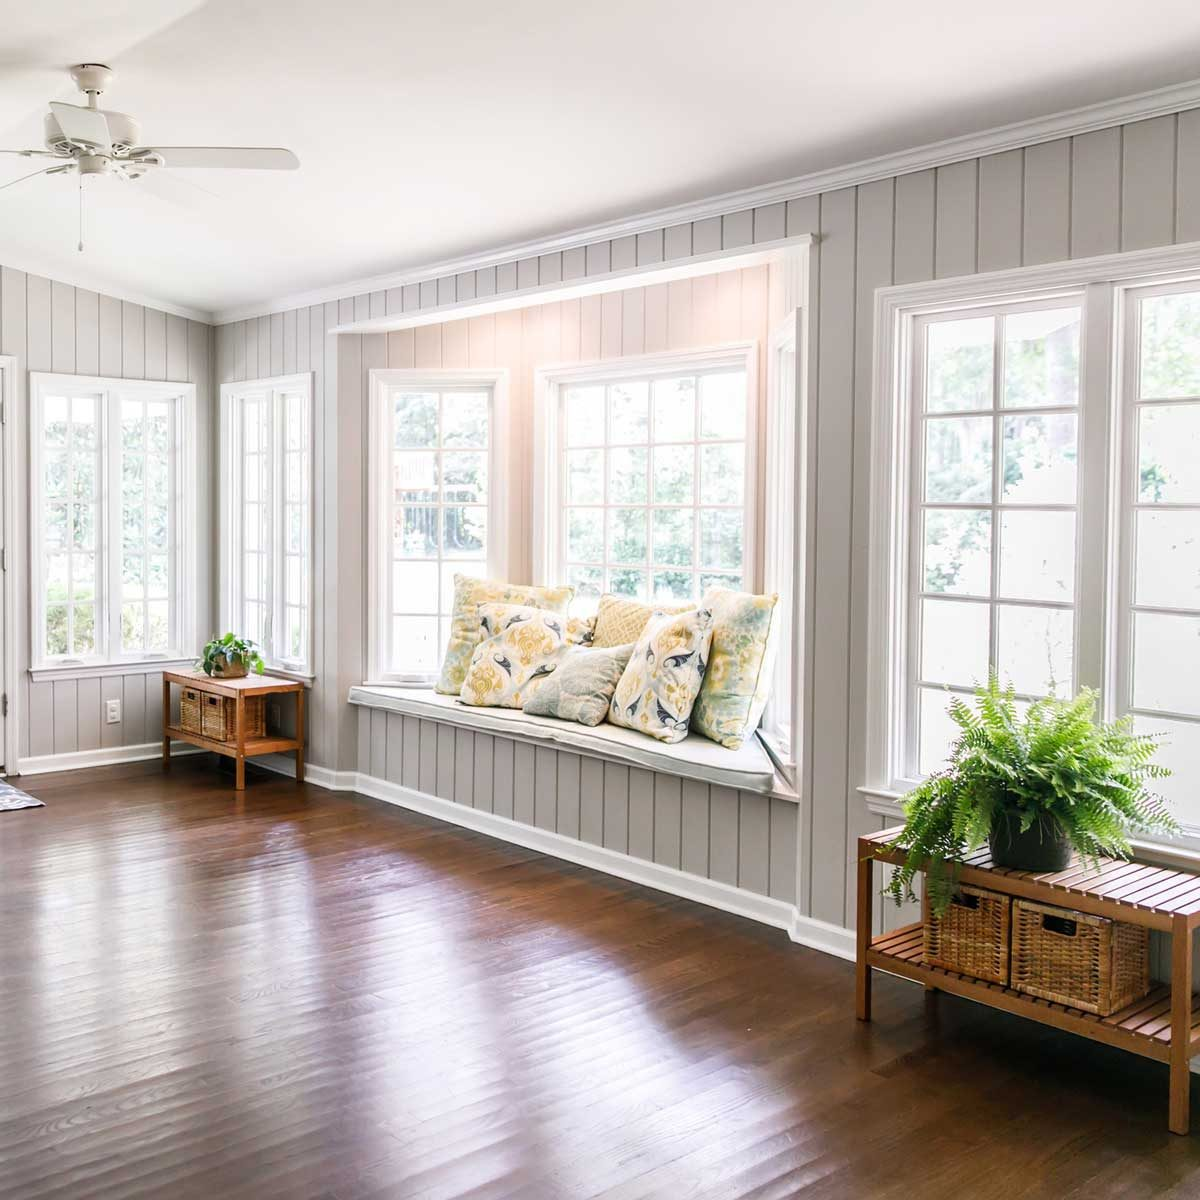 9 Home Design Trends That Will Take Over in 2020